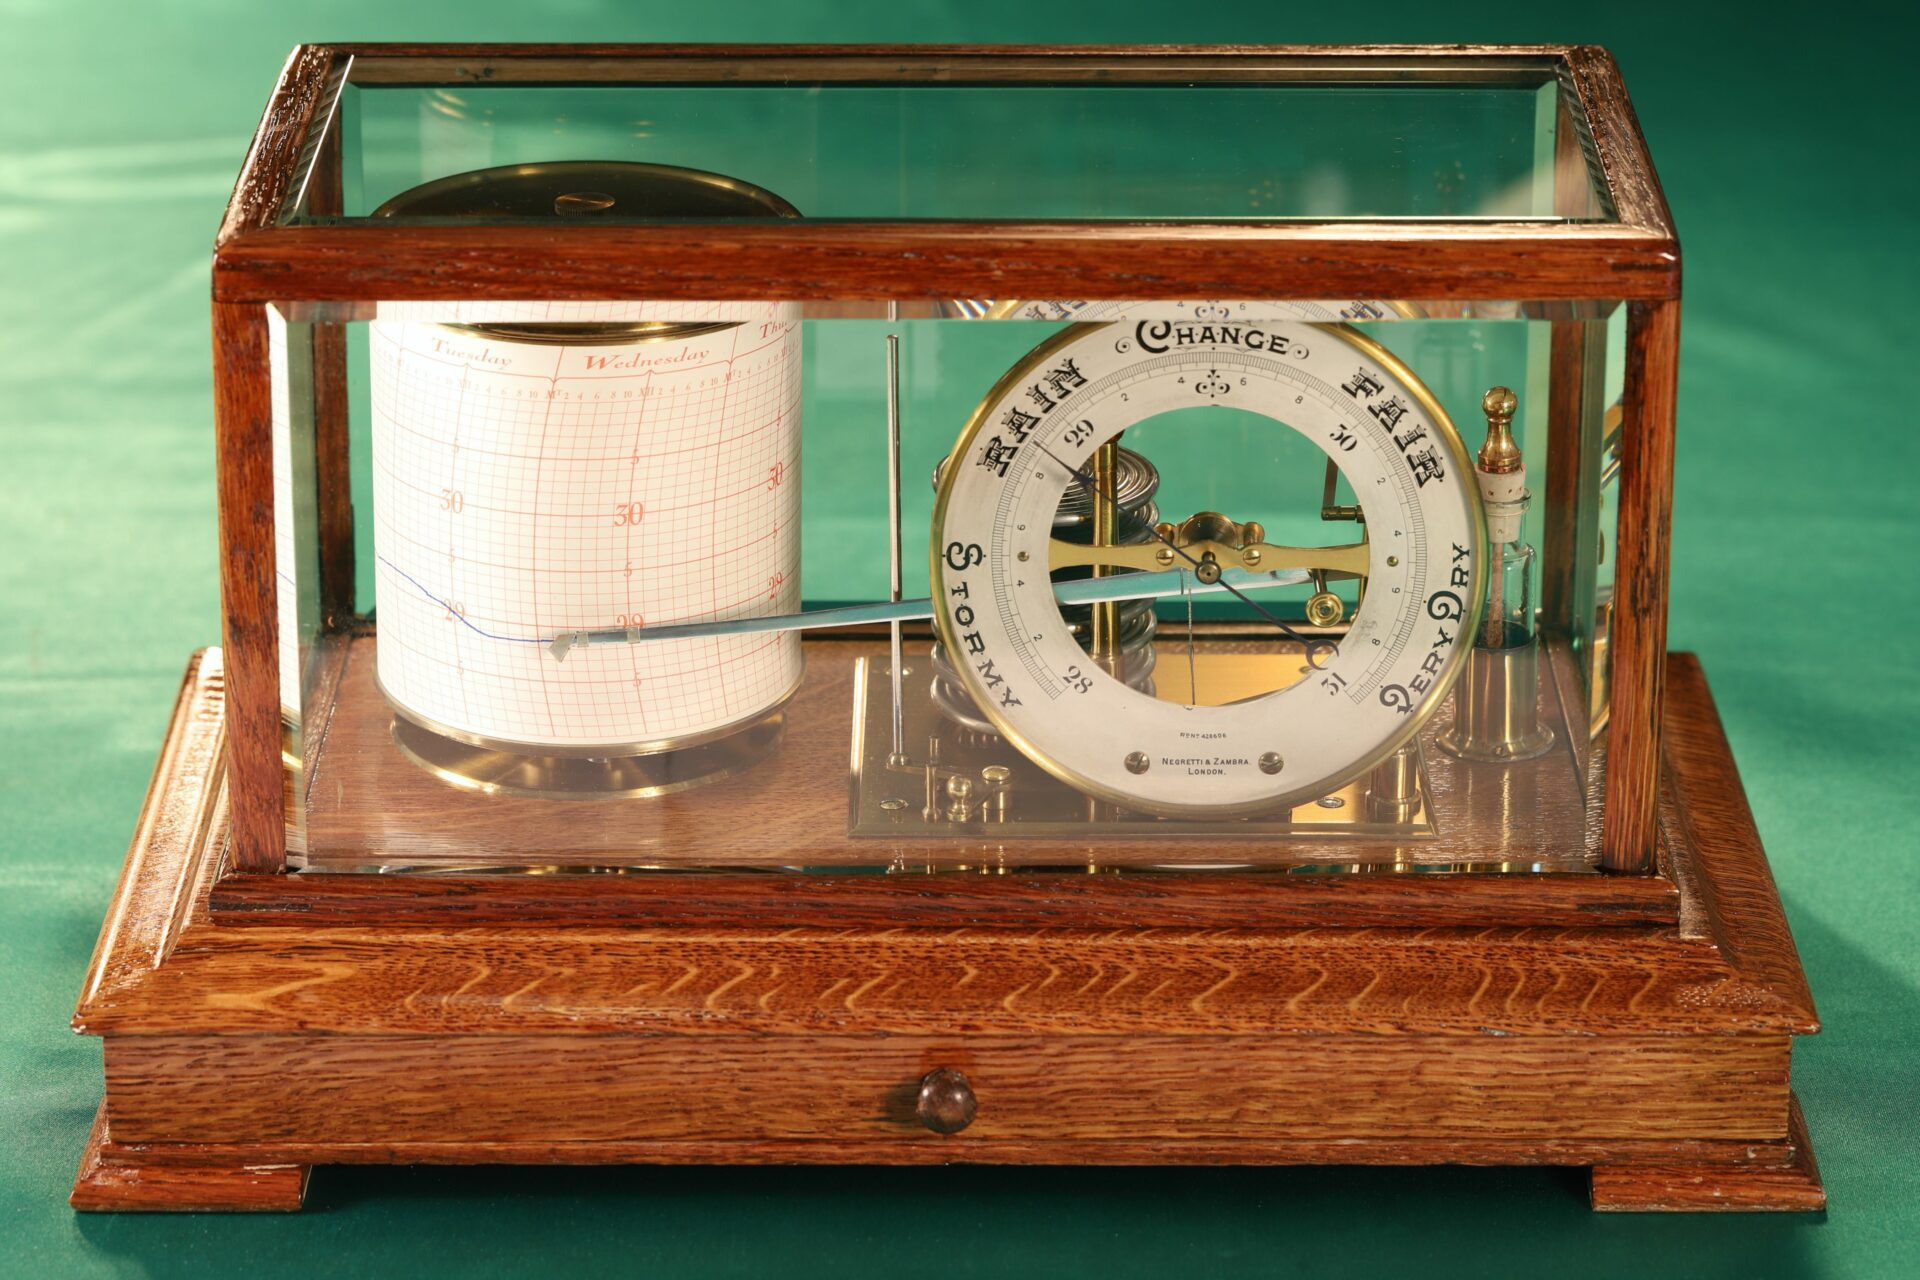 Image of Negretti & Zambra Barograph with Dial No 455 c1918 taken from front